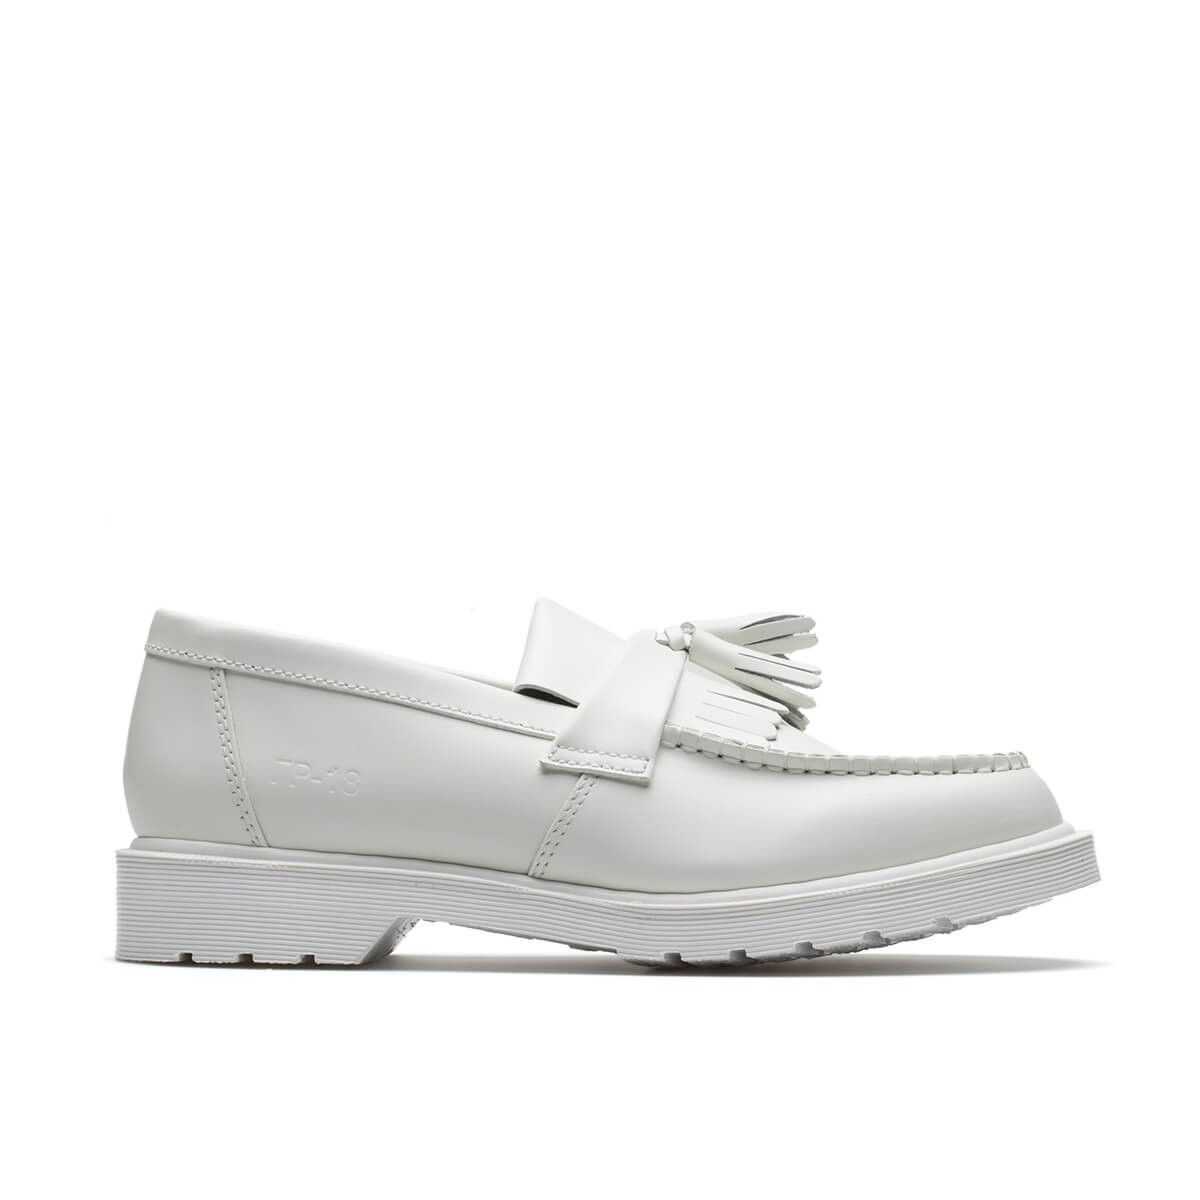 bb93aa6647bf Dr Martens Loafer shoes from the F W2018-19 Gosha Rubchinskiy collection in  white